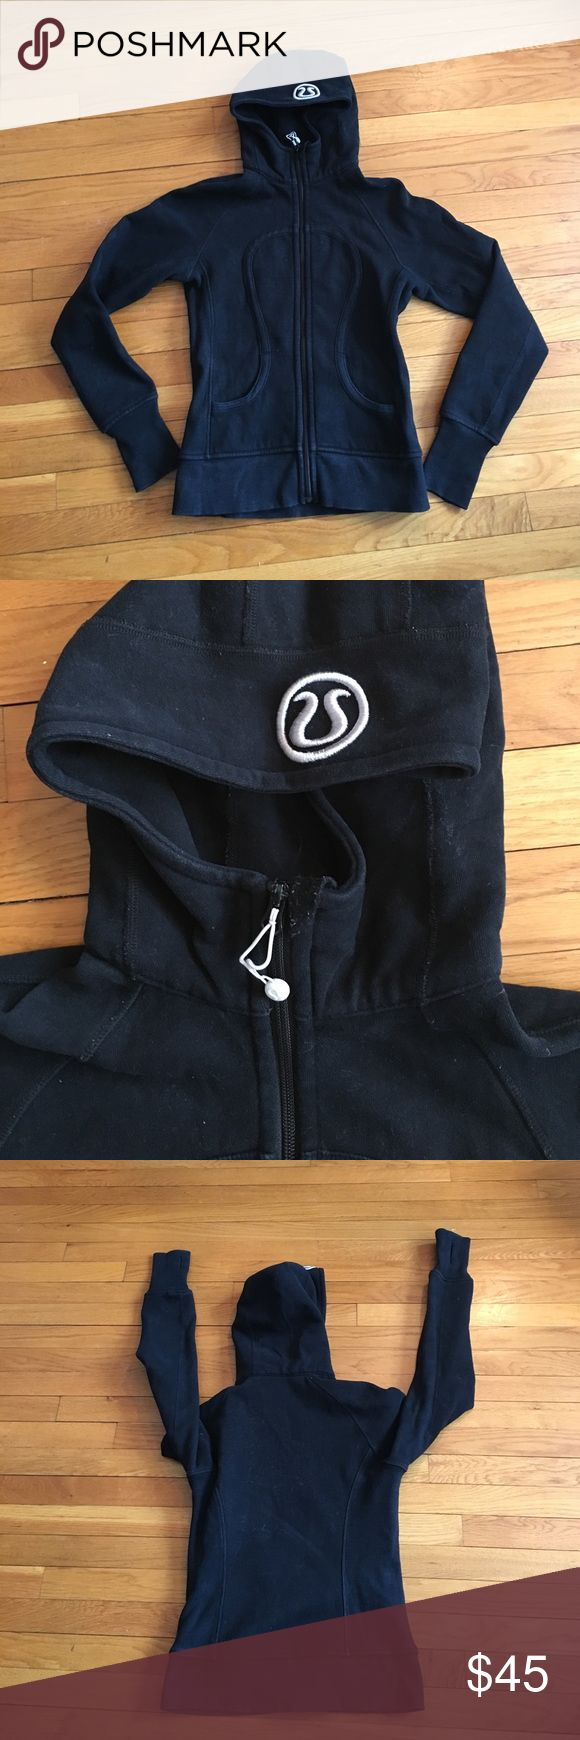 Lululemon Scuba Hoodie Black 4 Women's Lululemon Scuba Sweatshirt. Black full zip hoodie. Size tag is removed but this is a size 4. lululemon athletica Jackets & Coats